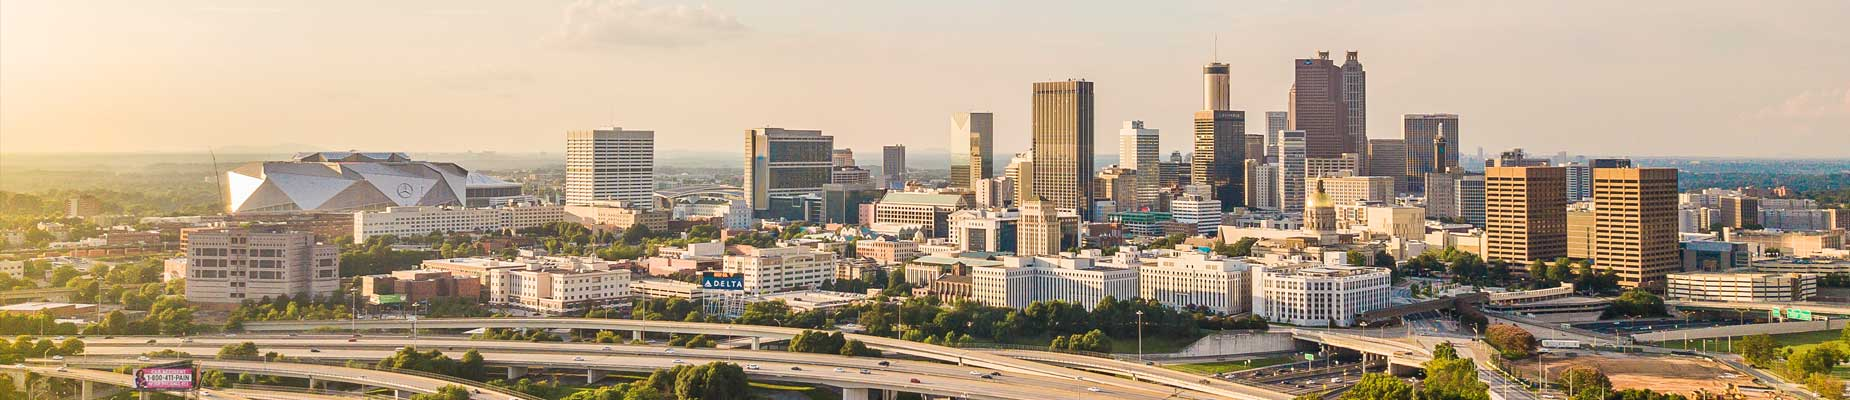 Atlanta Georgia Human Resources Outsourcing Skyline